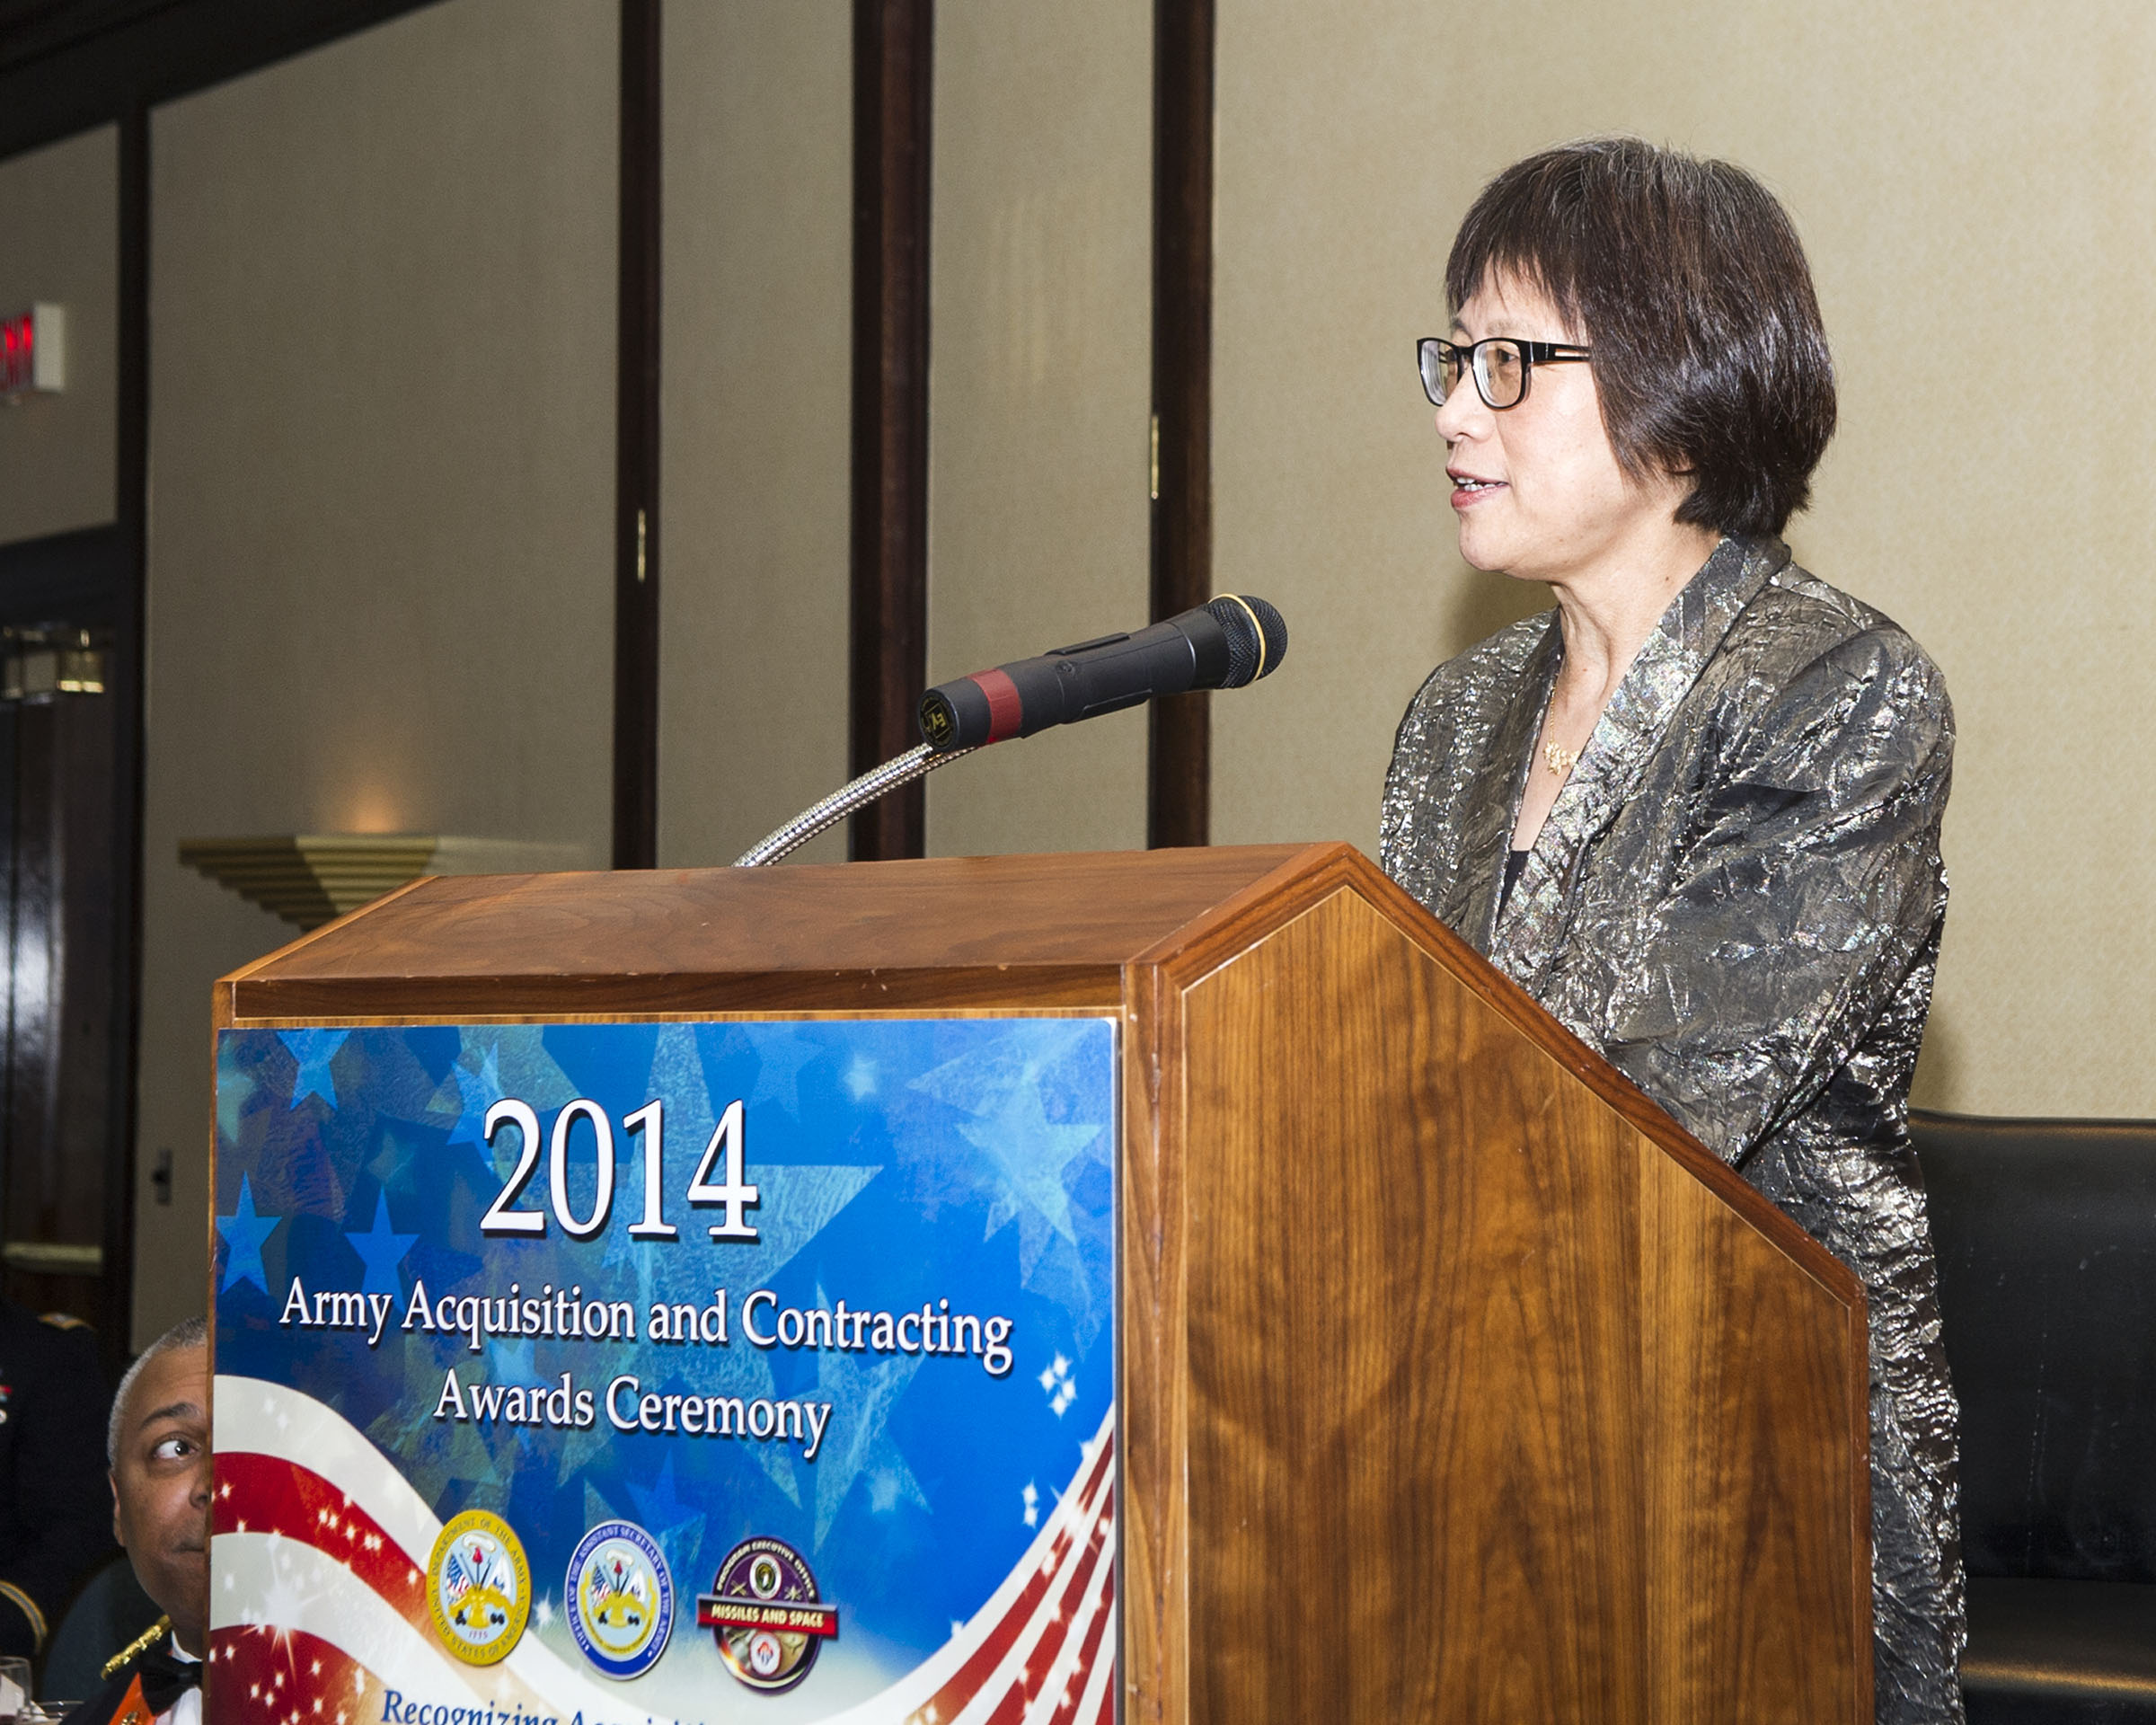 The Army Acquisition Executive, the Hon. Heidi Shyu, honored the winners of the 2014 U.S. Army Acquisition Awards at a ceremony on April 28, 2015, in Huntsville, Alabama.